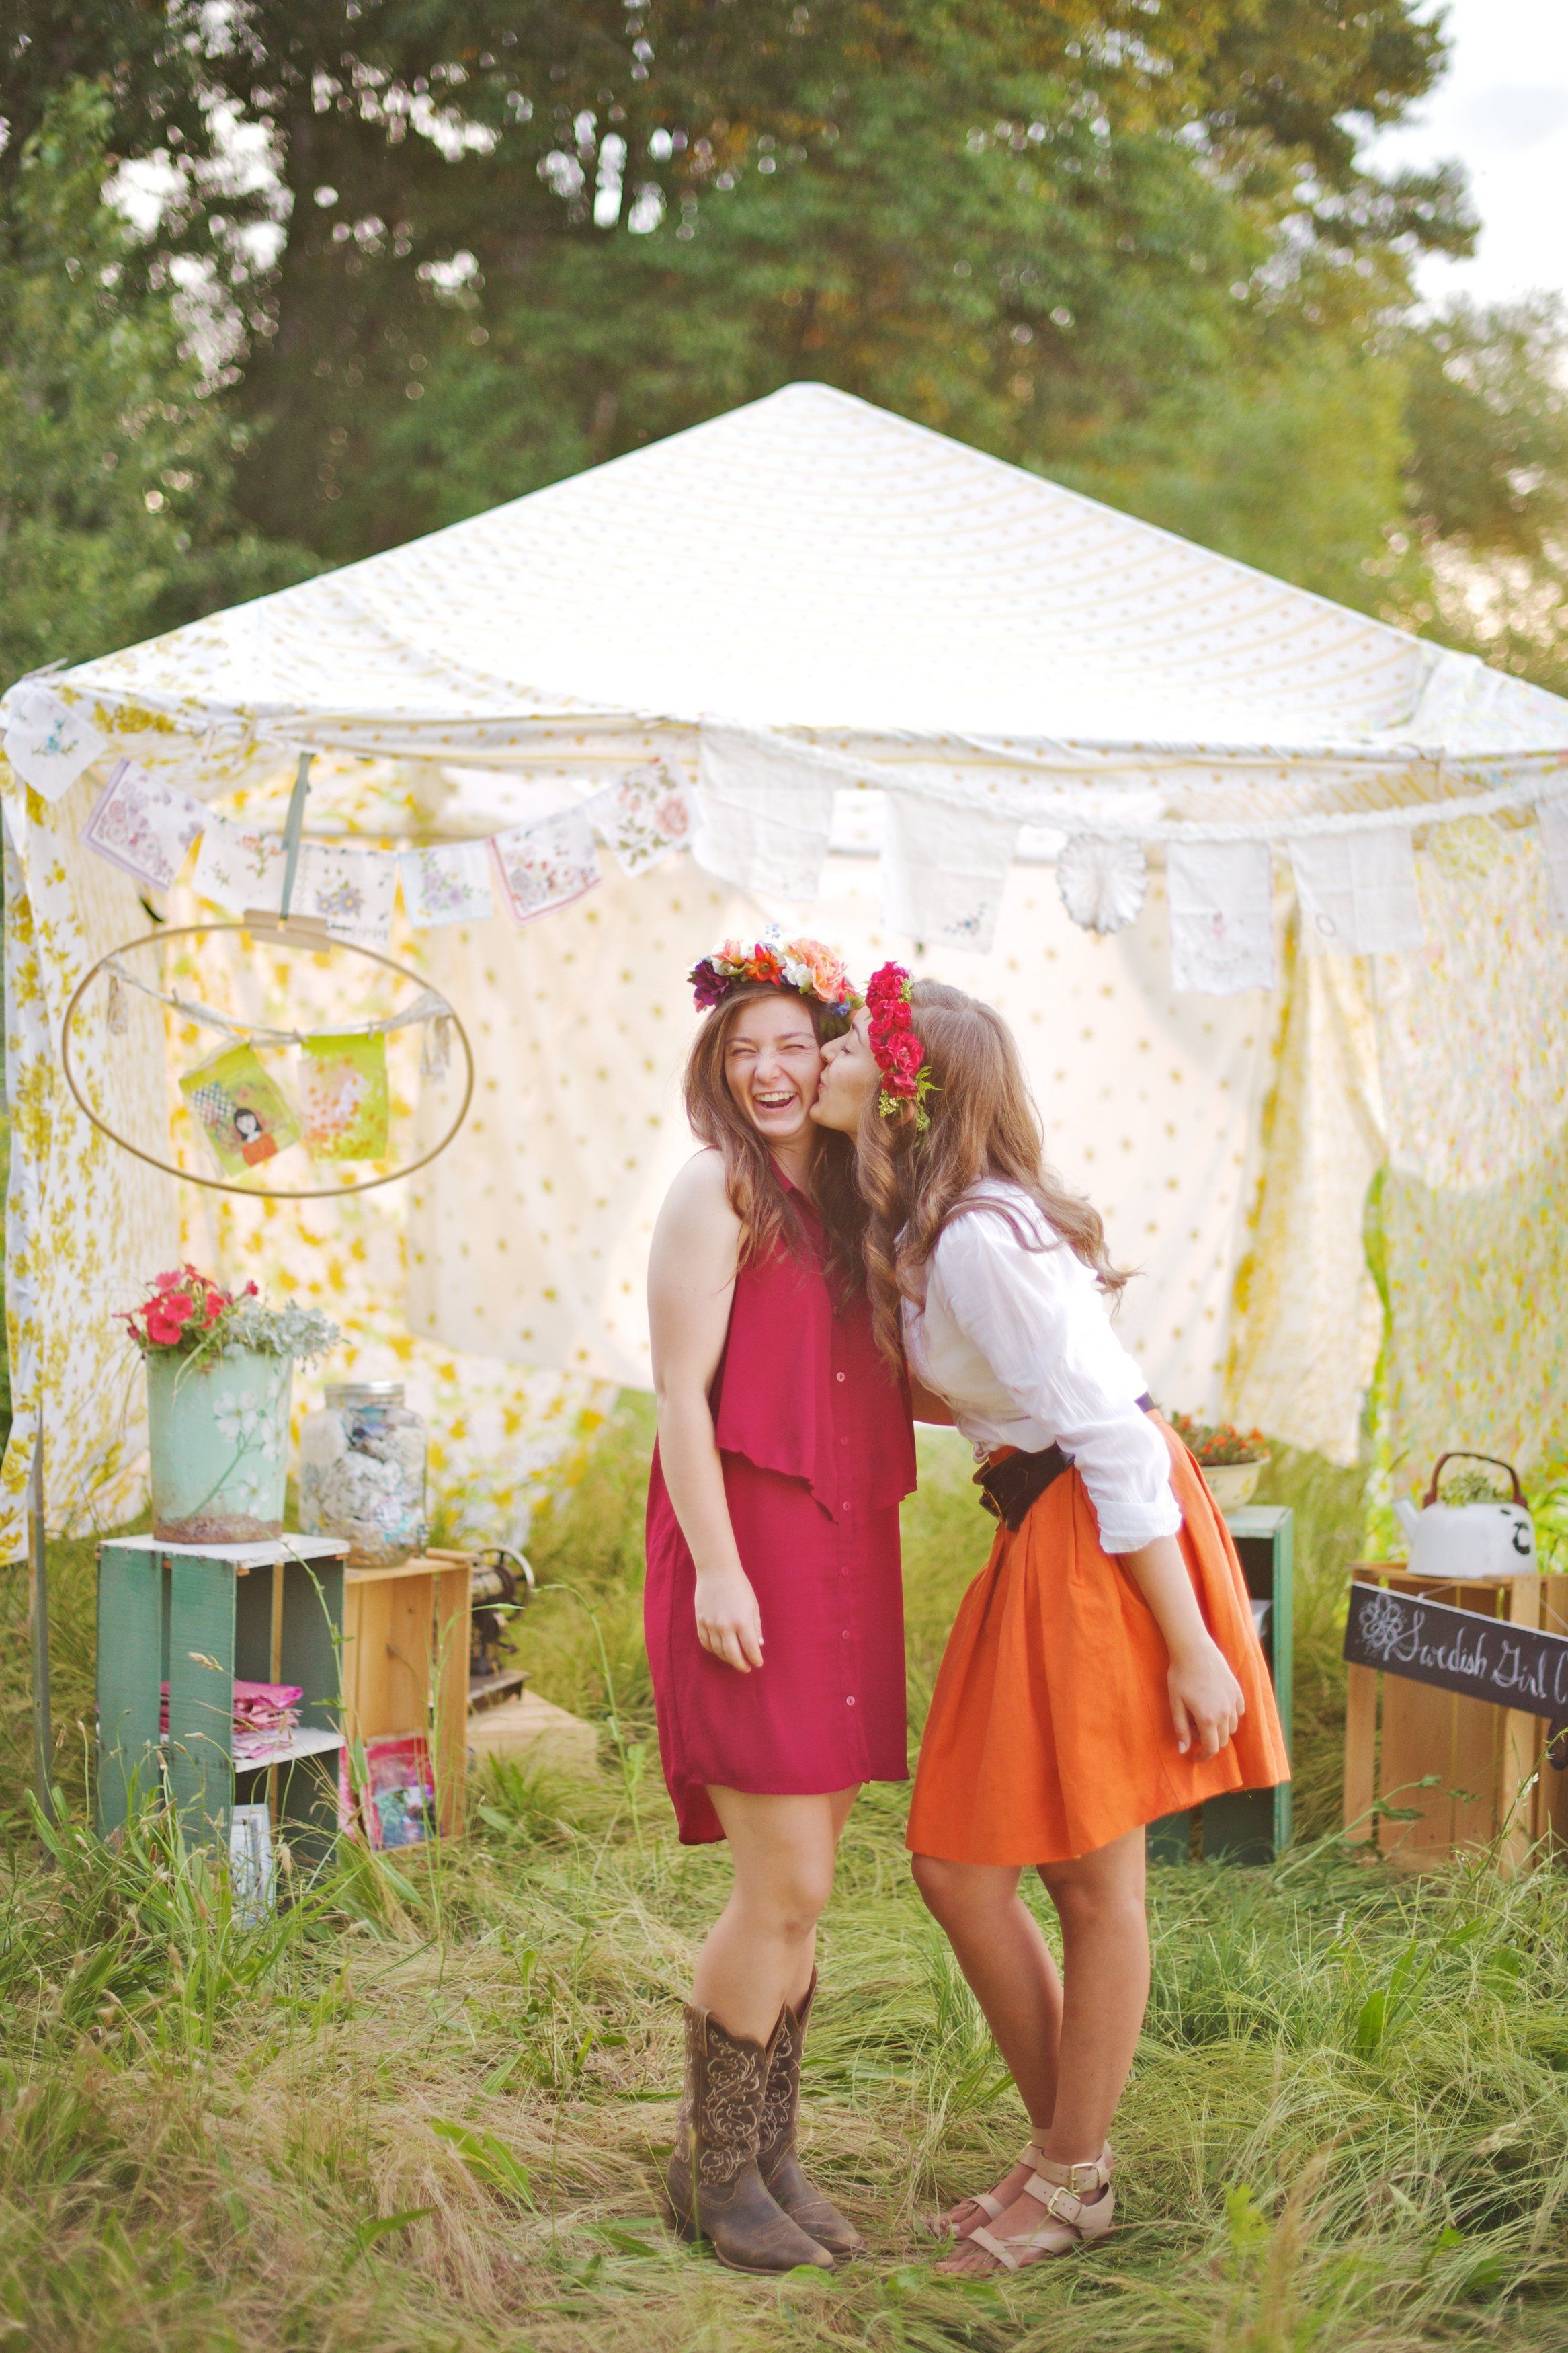 My senior pictures with my cousin! We built a tent out of granny sheets and filled it with handmade art! Photos by #fotoNovella @Shannon Boettcher